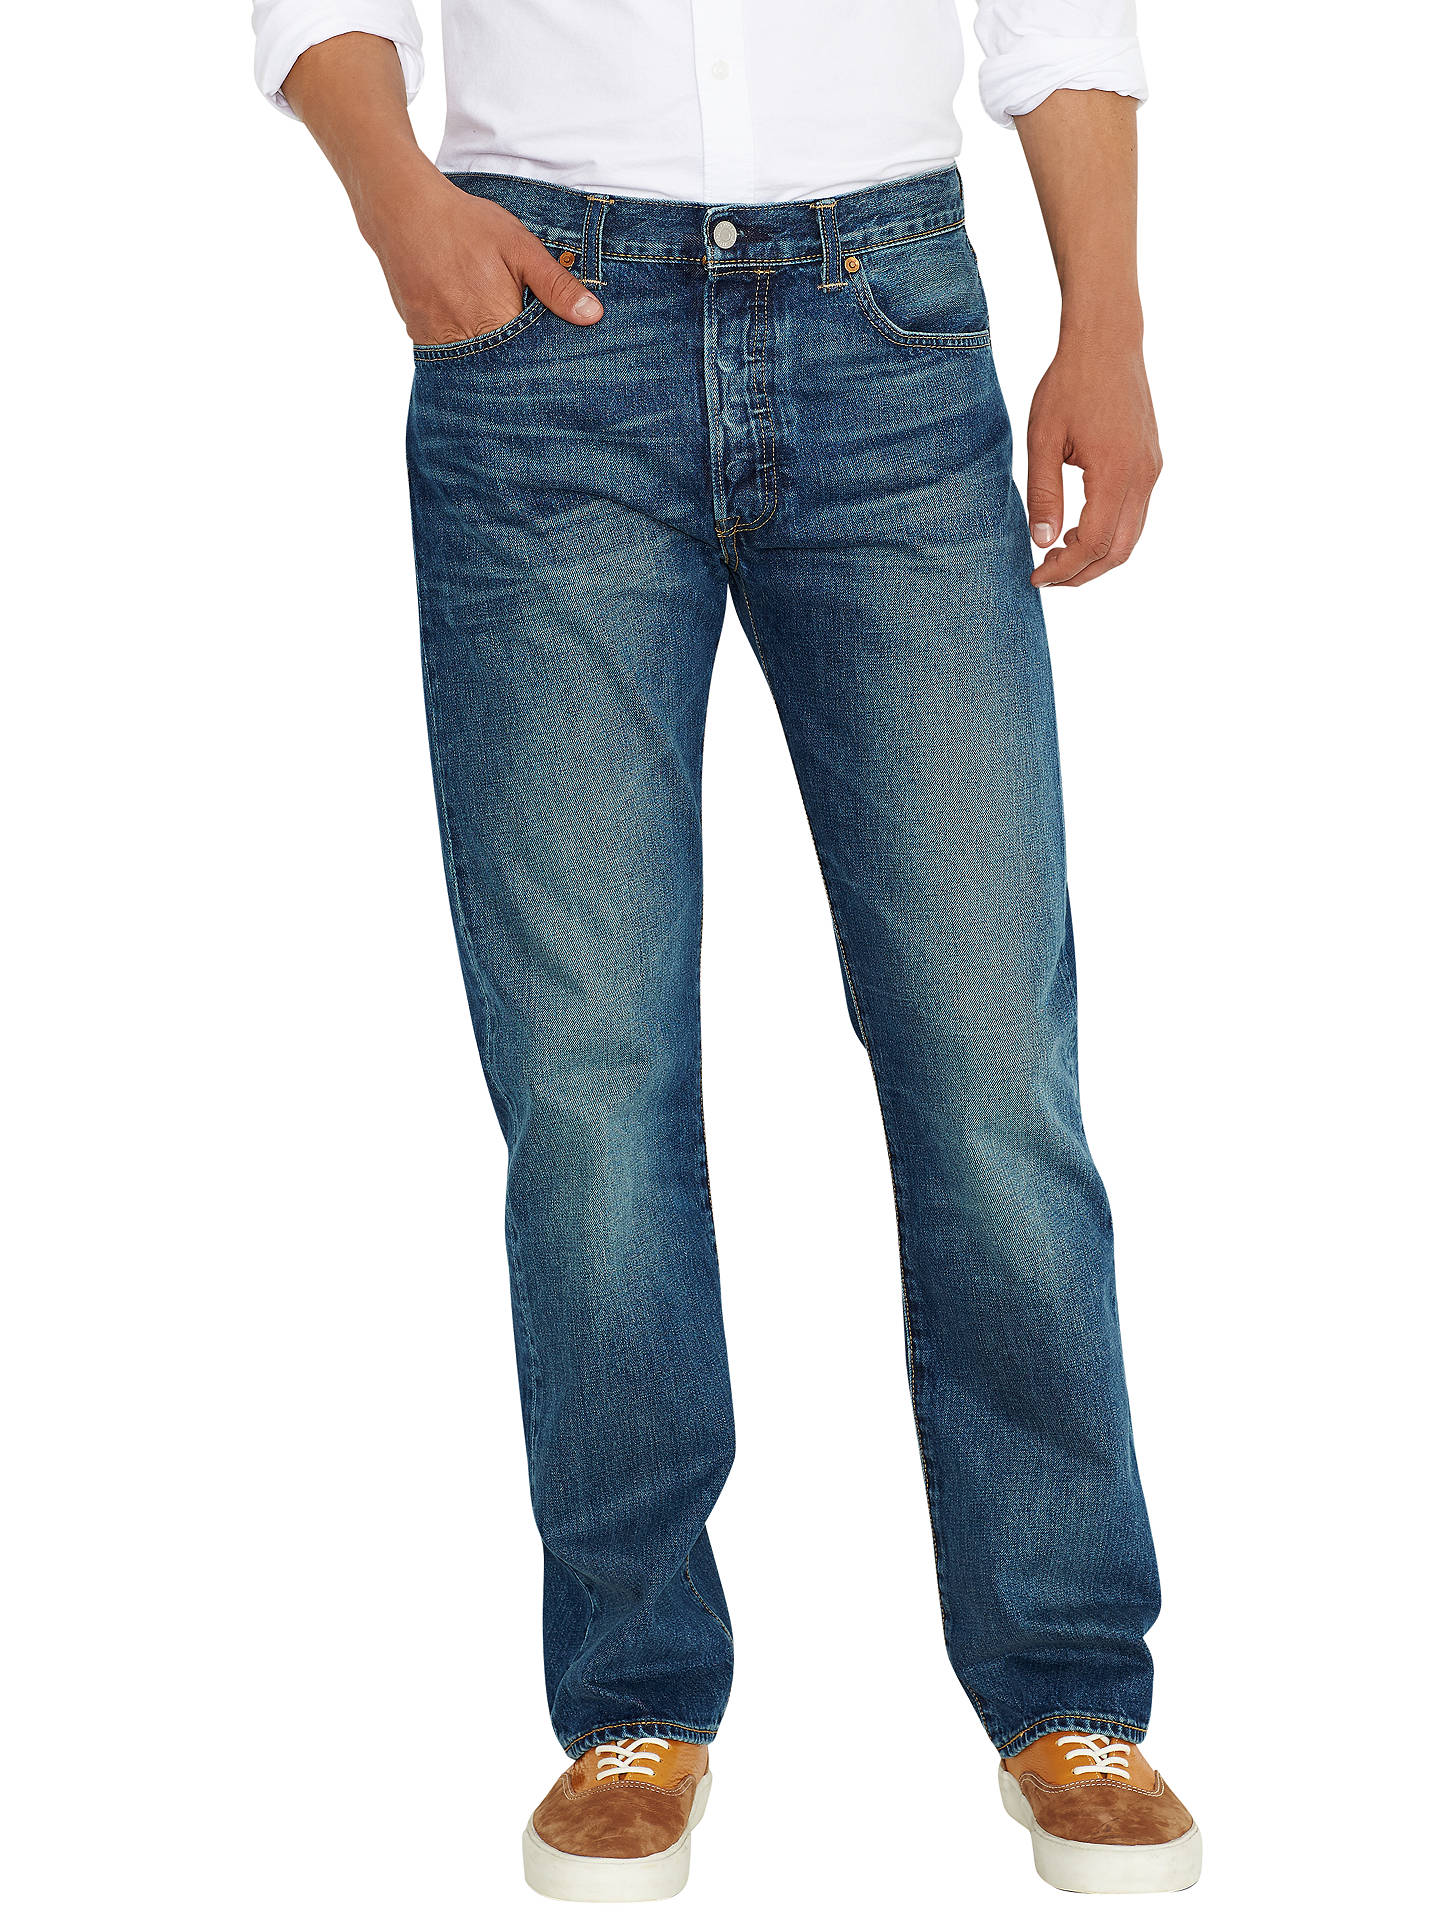 super popular 1c534 58005 Levi's 501 Original Straight Jeans, Hook